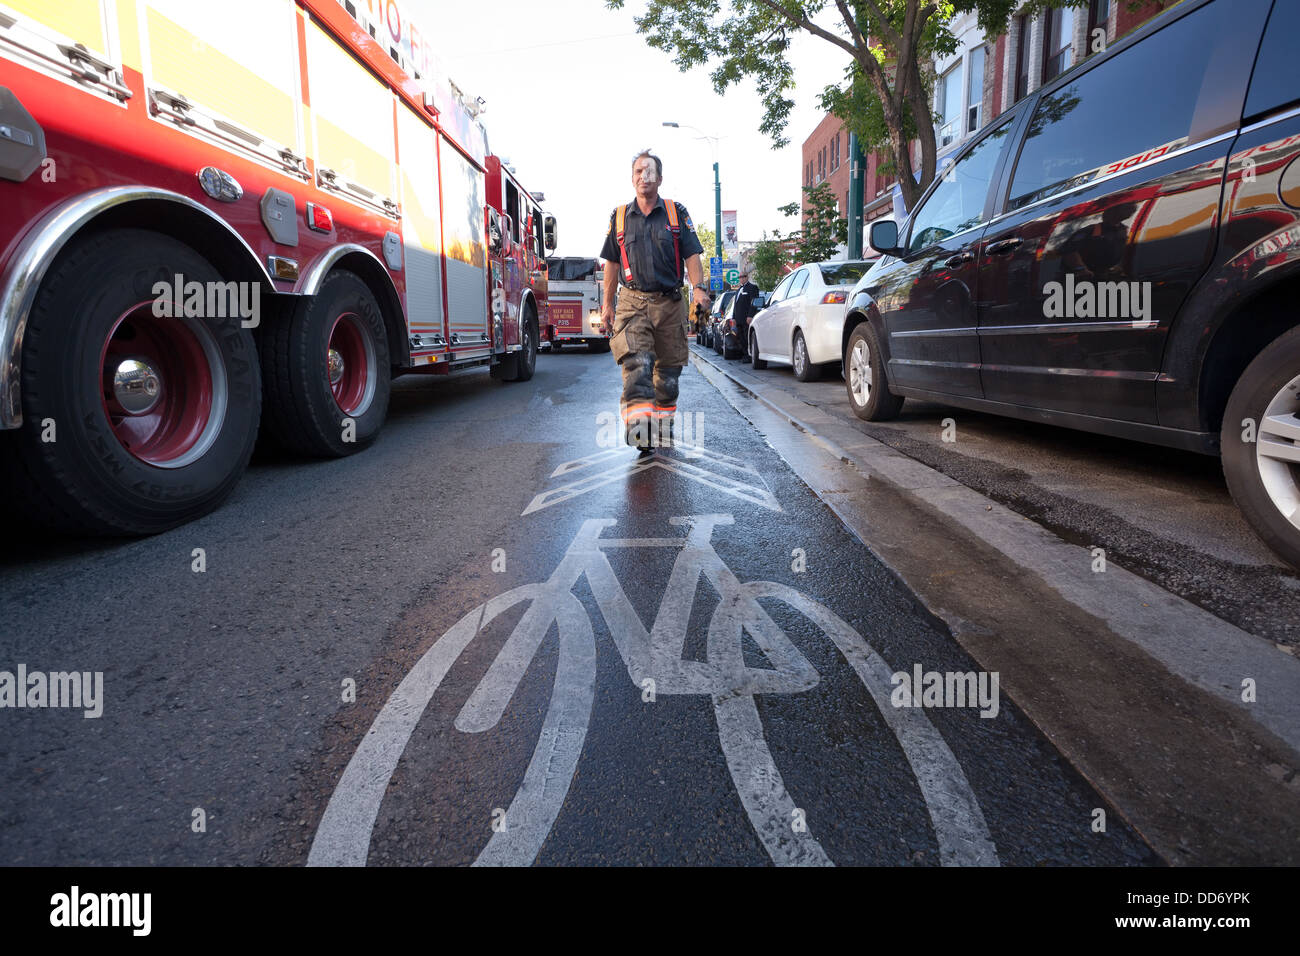 A firefighter walking towards a bike lane marking during a fire in Kensington Market, Toronto, Ontario, Canada. - Stock Image